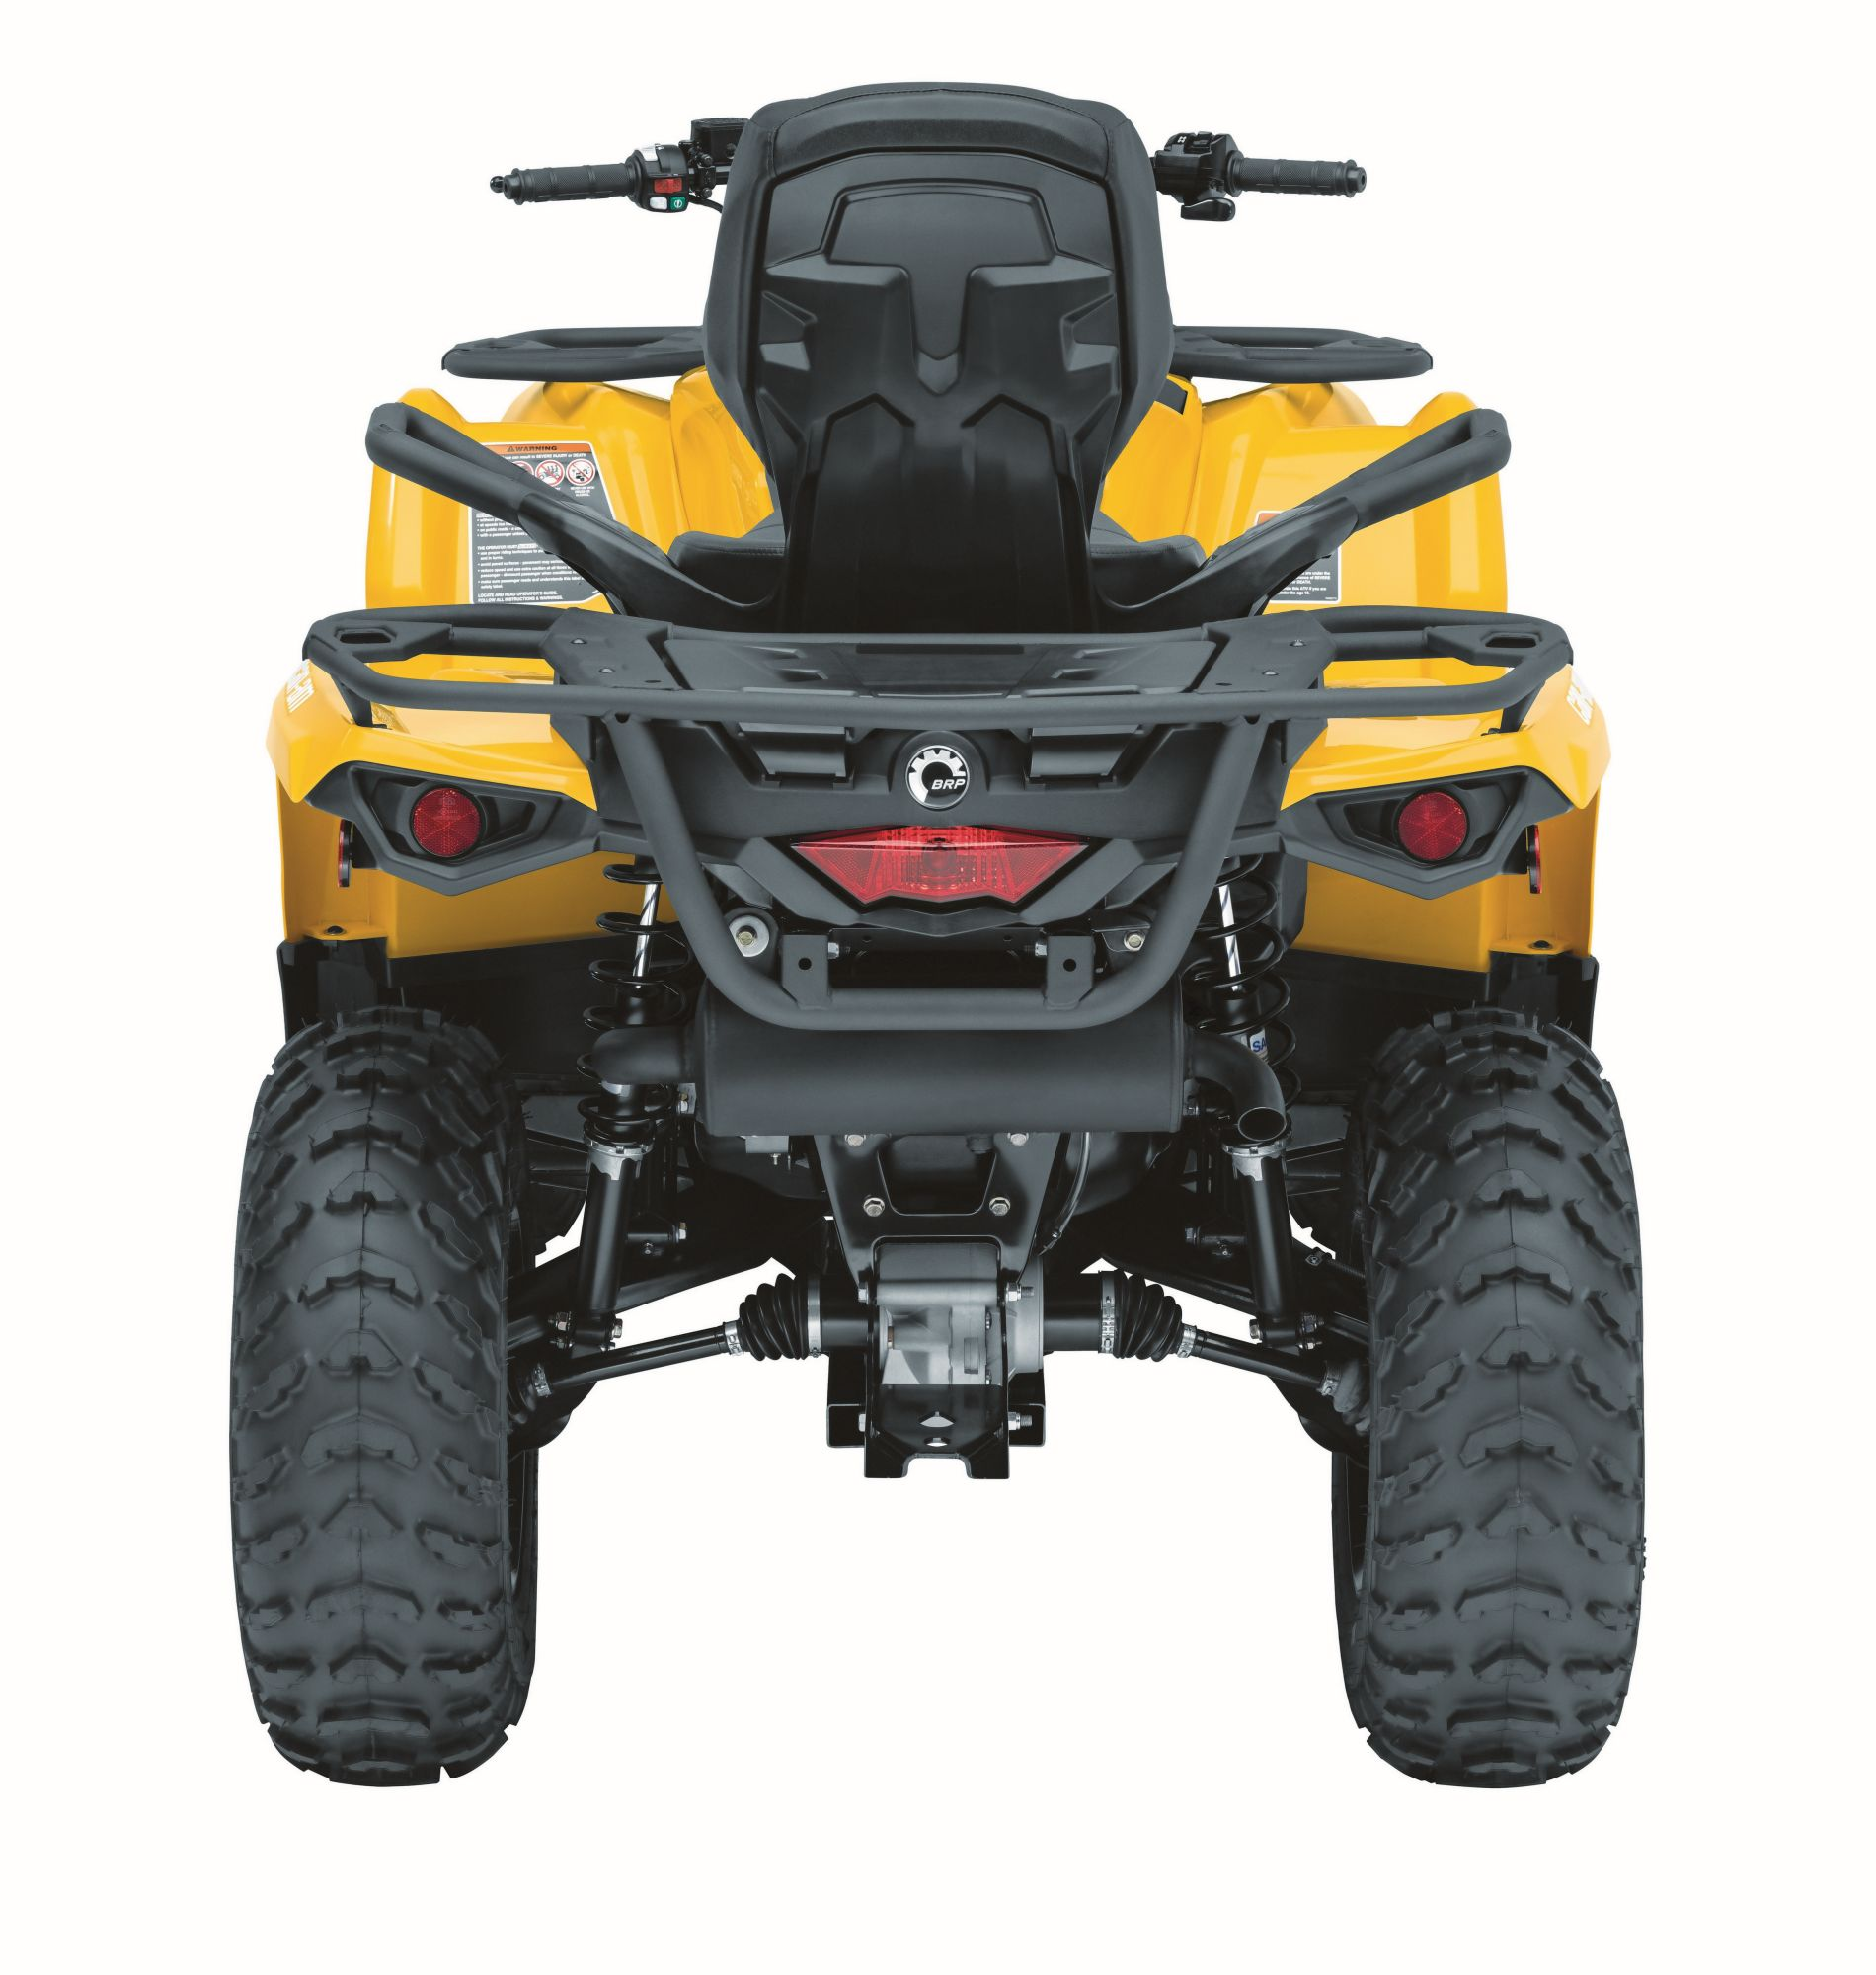 motorrad occasion can am outlander l max 570 dps kaufen. Black Bedroom Furniture Sets. Home Design Ideas